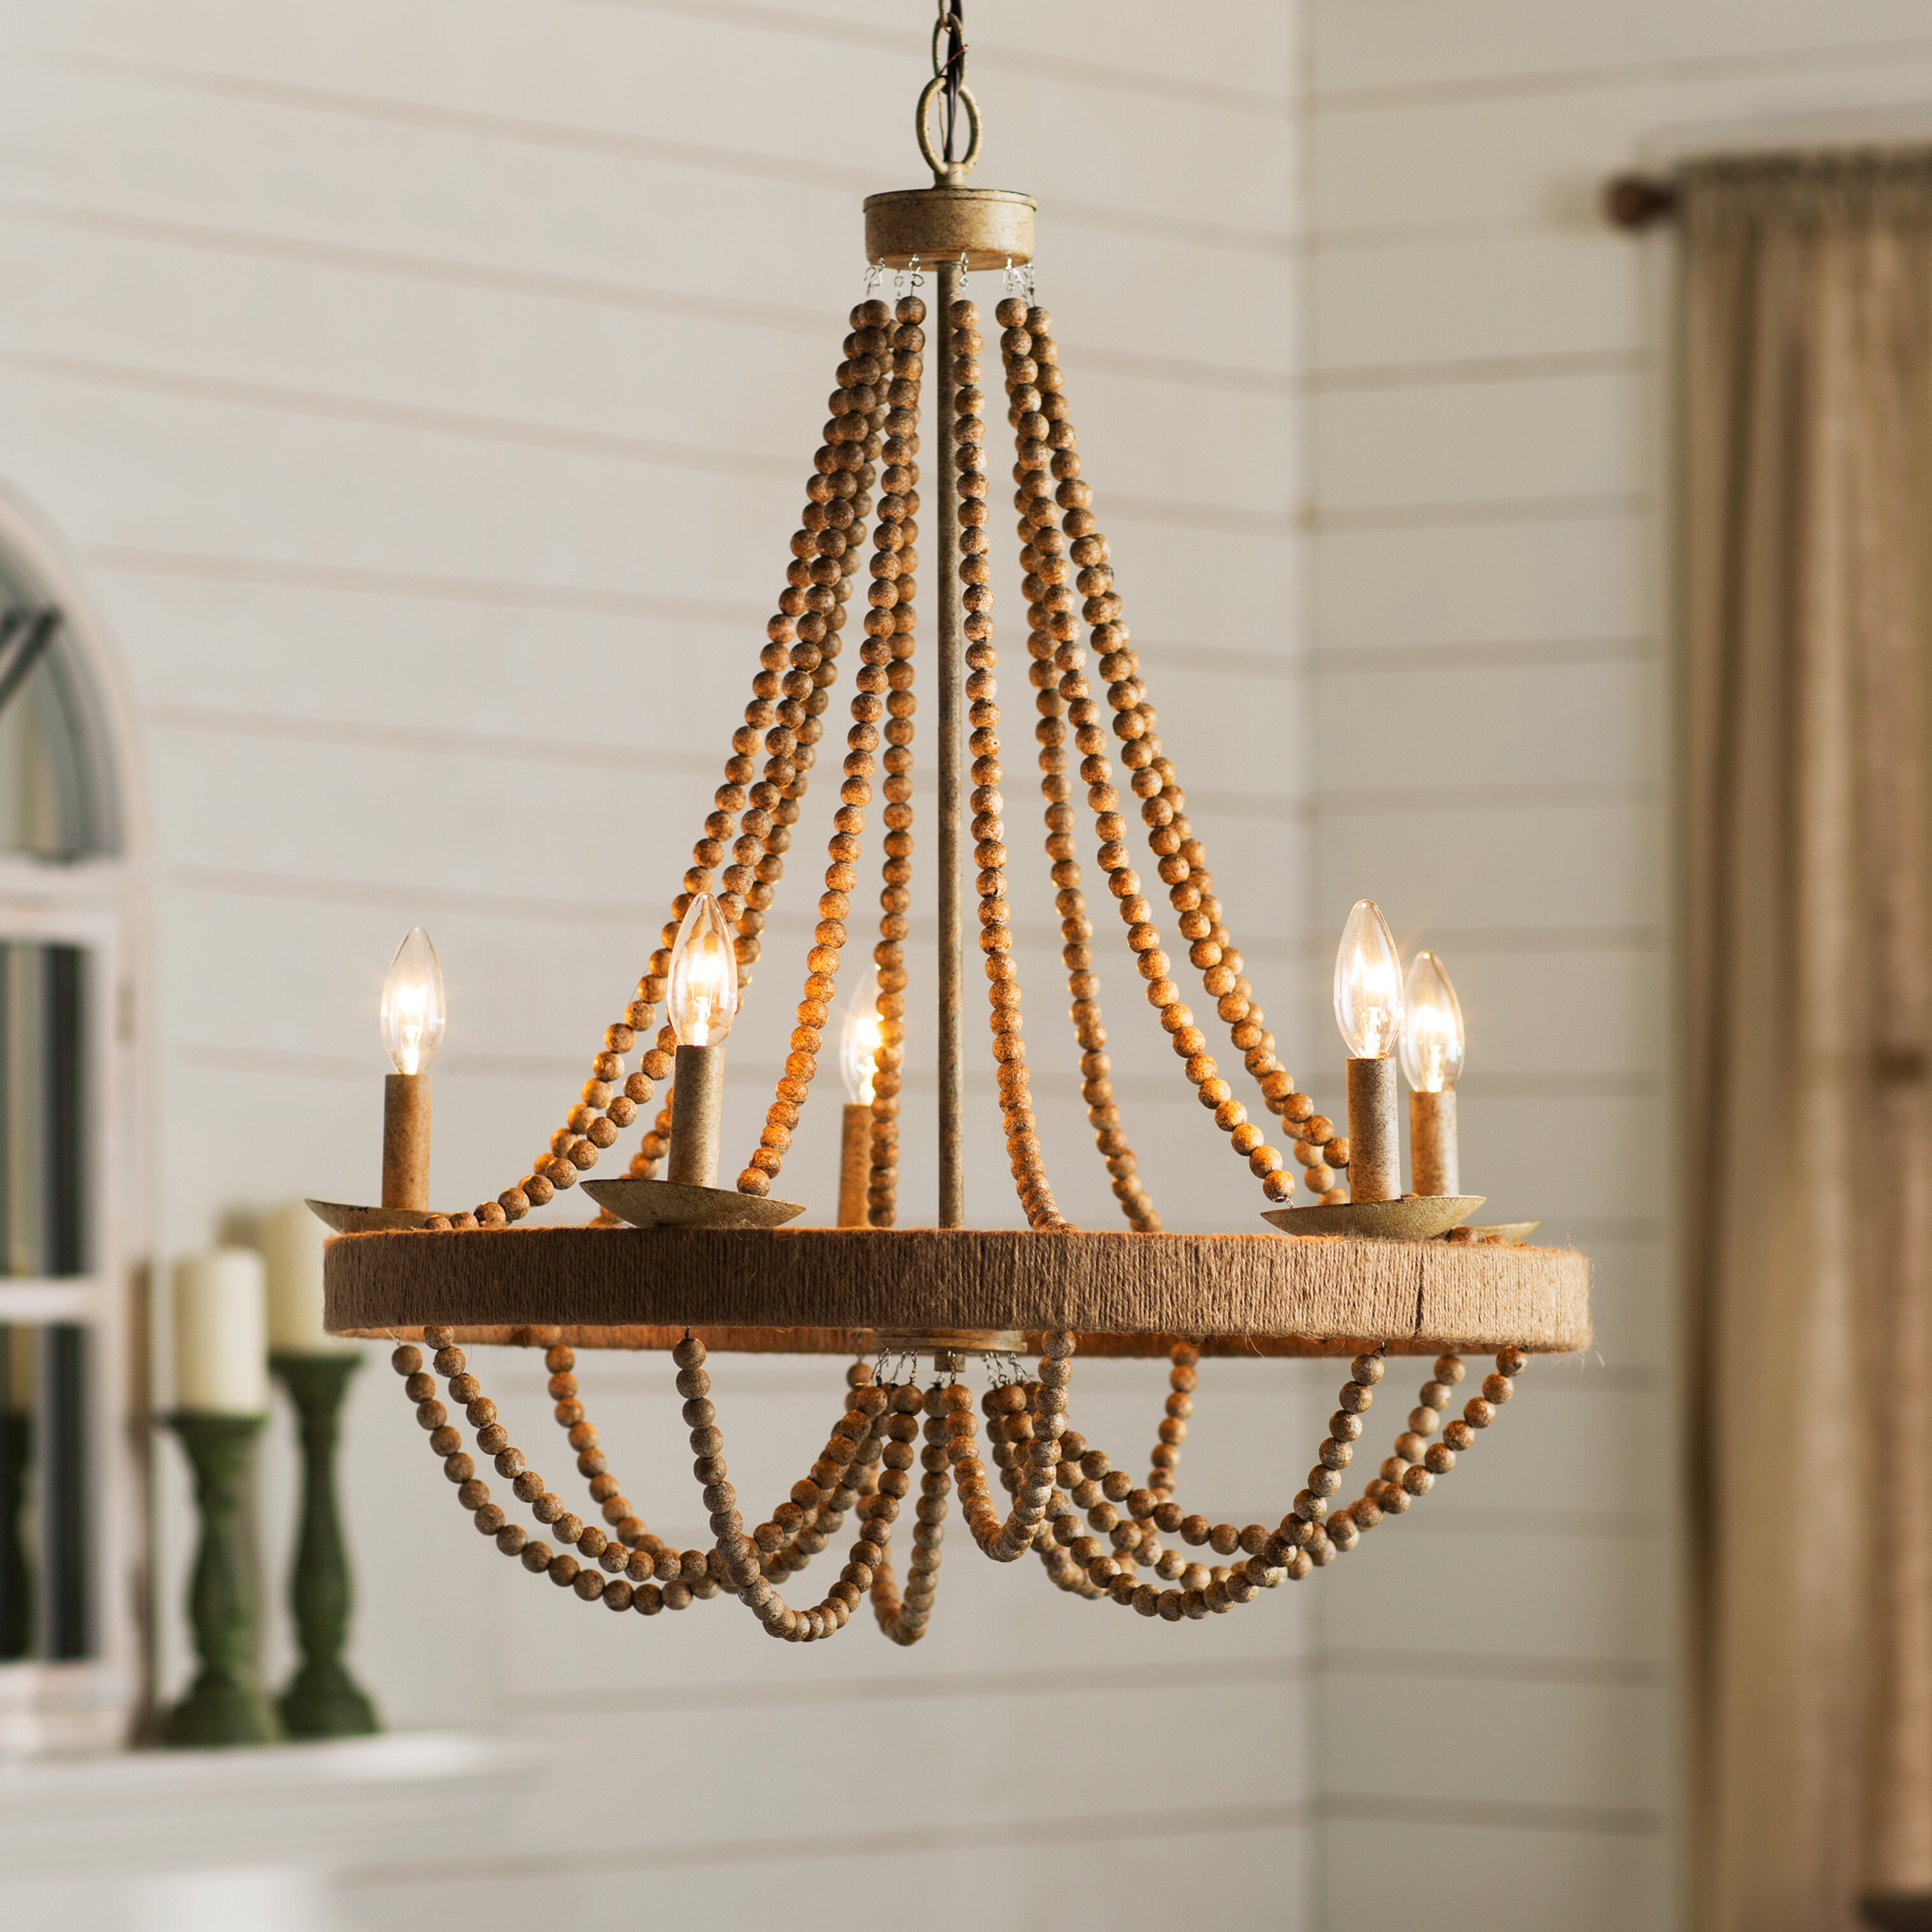 small ephemeral closdurocnoir old york central station new chandelier grand fashioned com